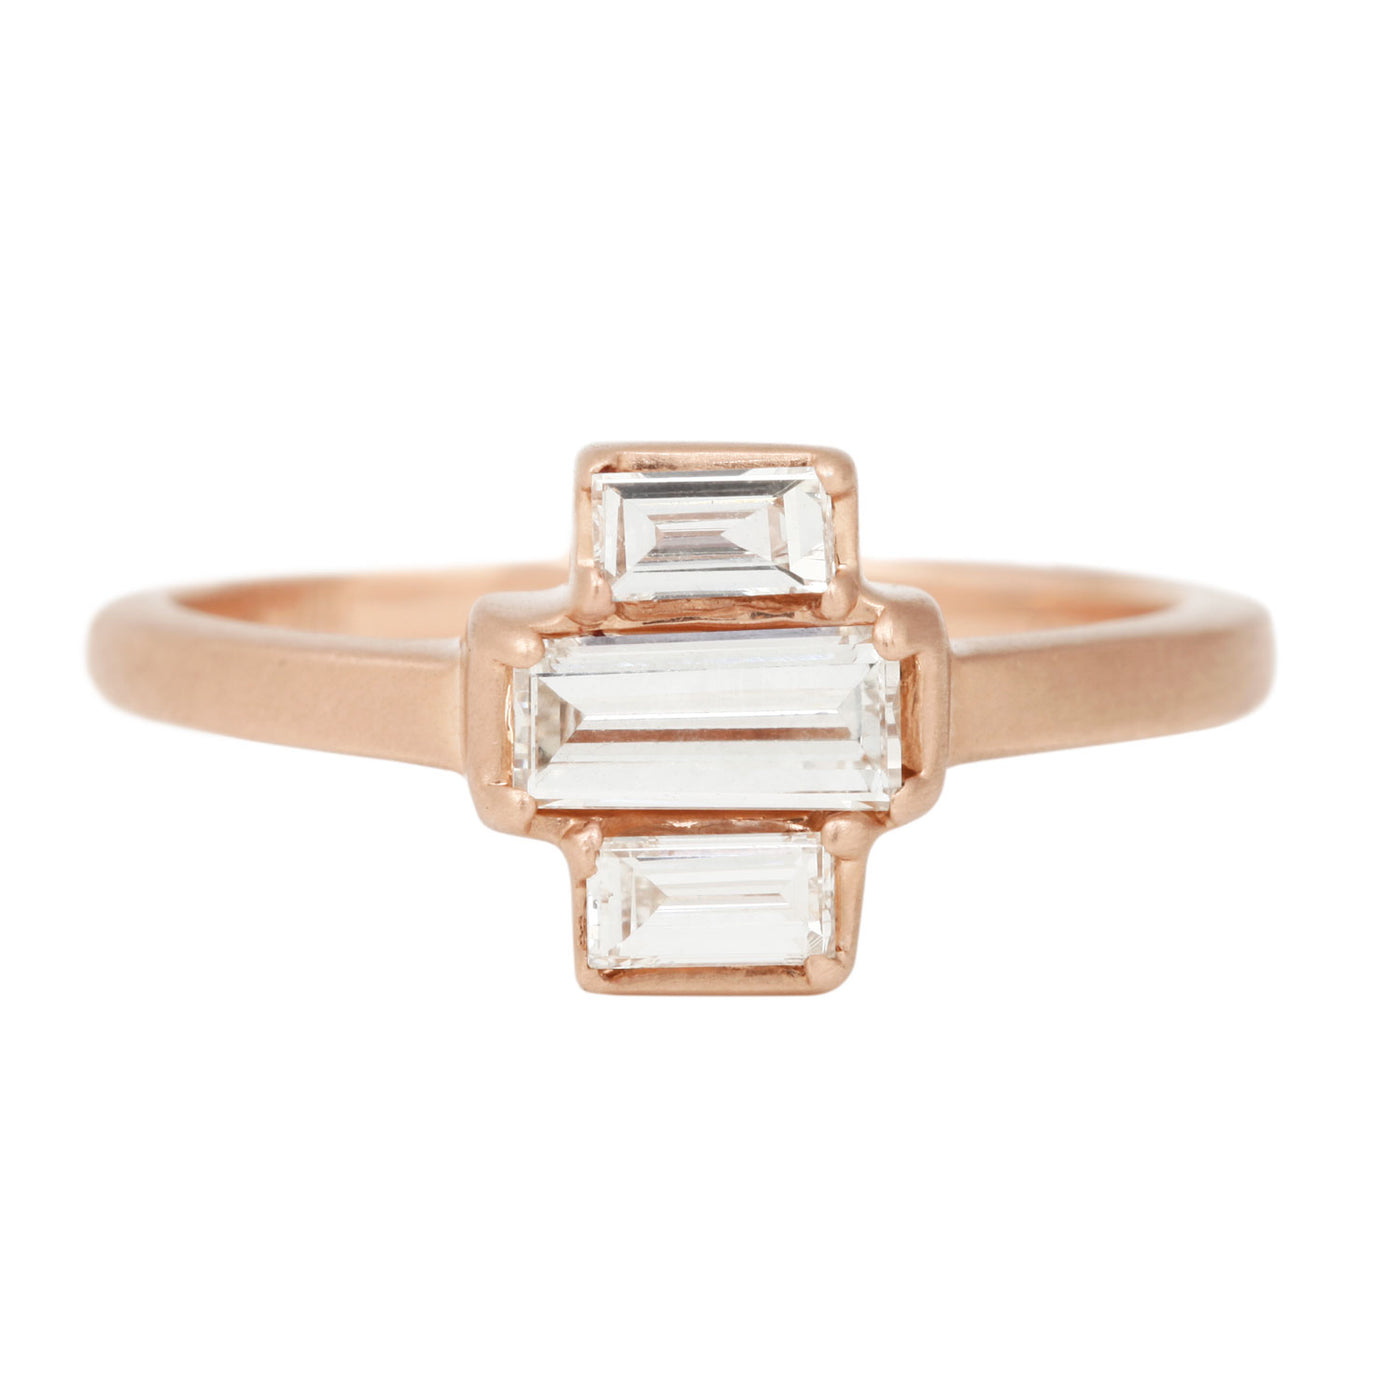 Rebecca Overmann Deco Diamond Stack Ring